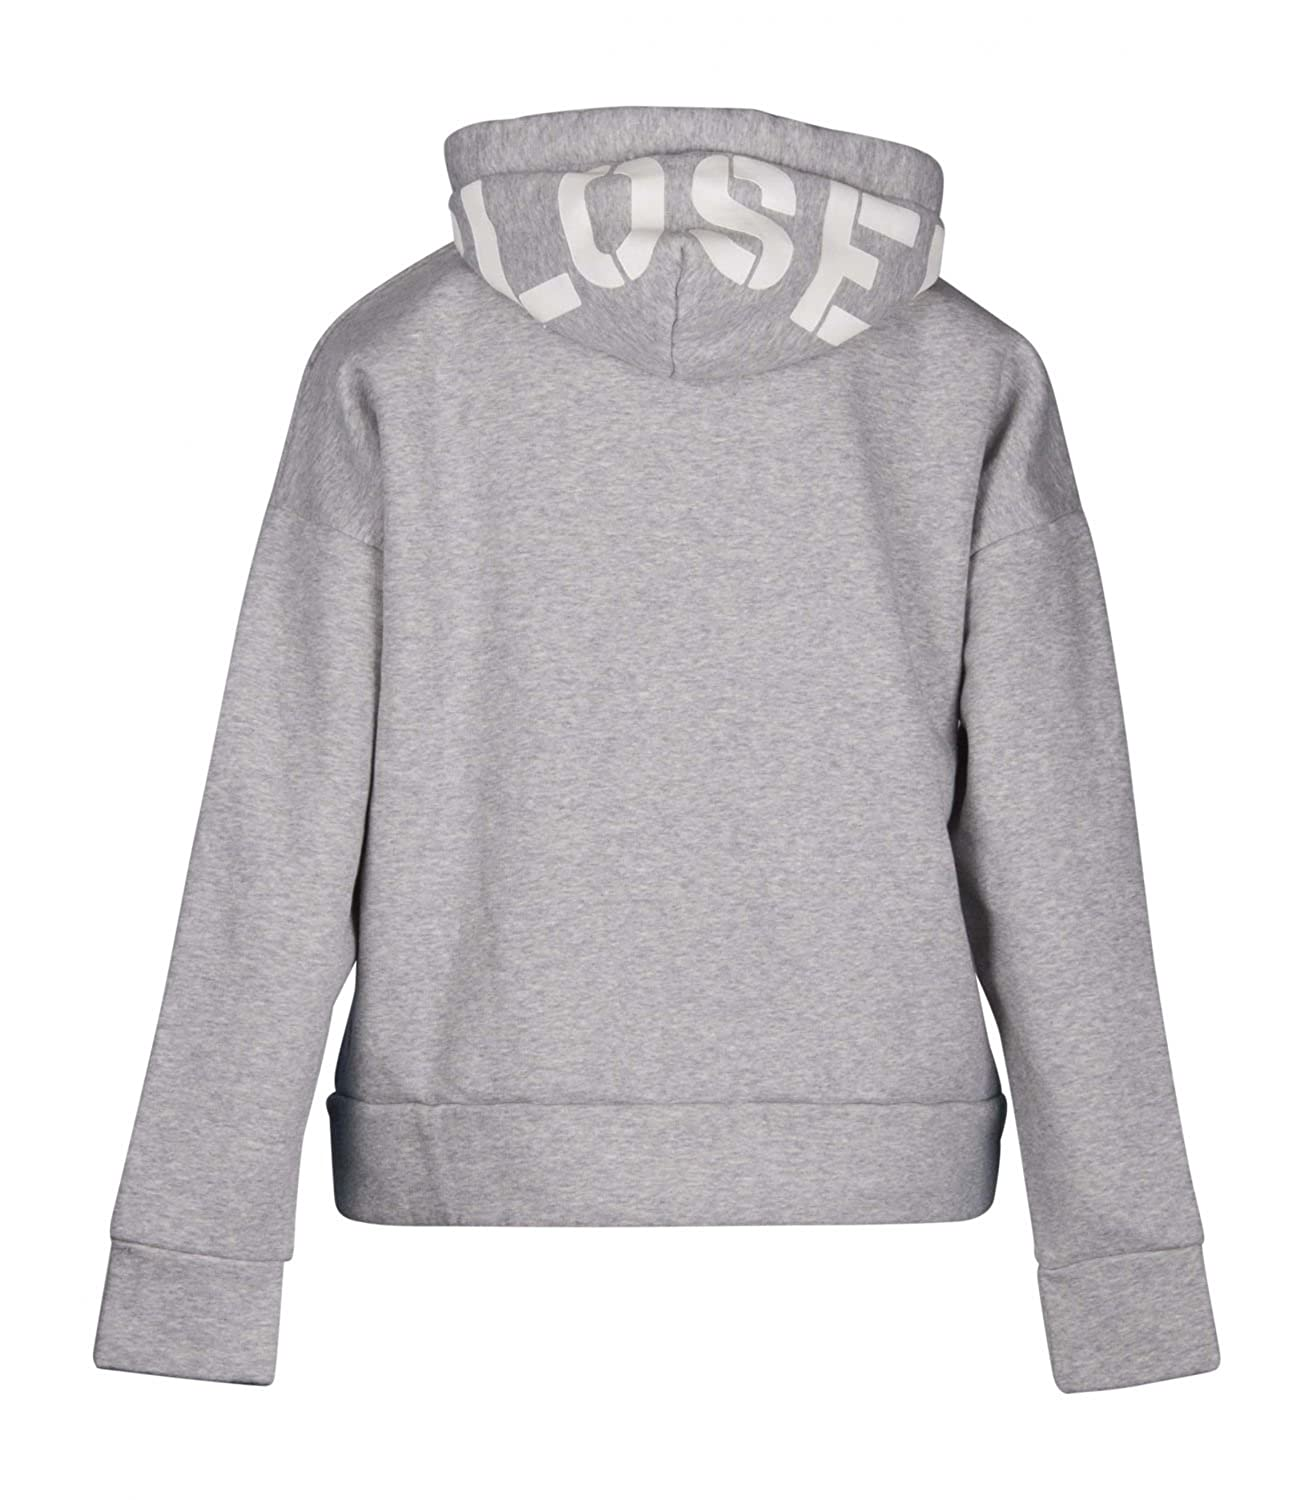 quality design 1cbdc 7dbbe CLOSED Damen Hoodie C95893 grau - S: Amazon.de: Bekleidung